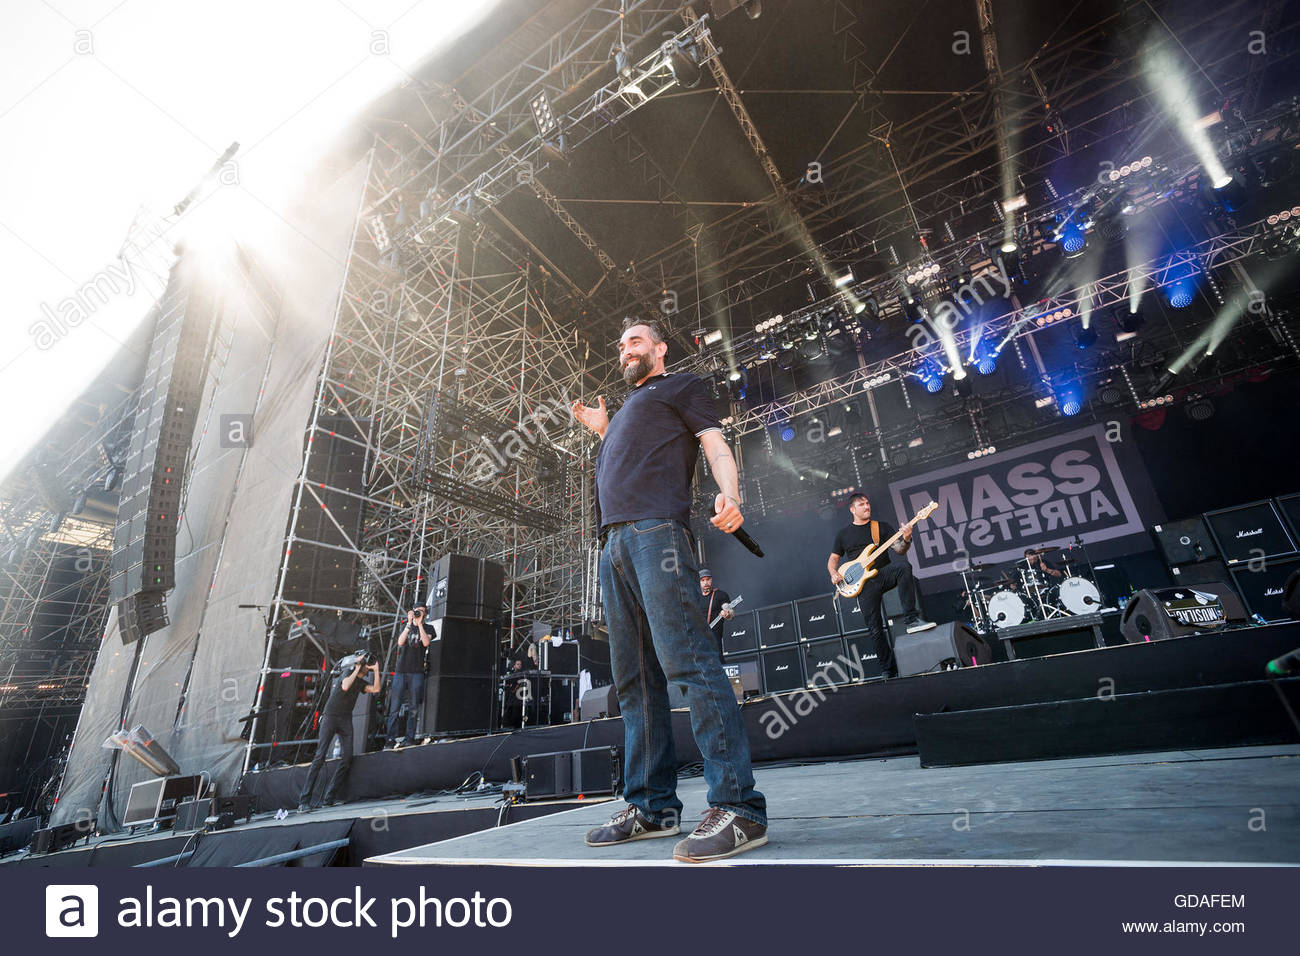 Mass Hysteria (French metal band) performing live - singer Mouss Kelai - Stock Image